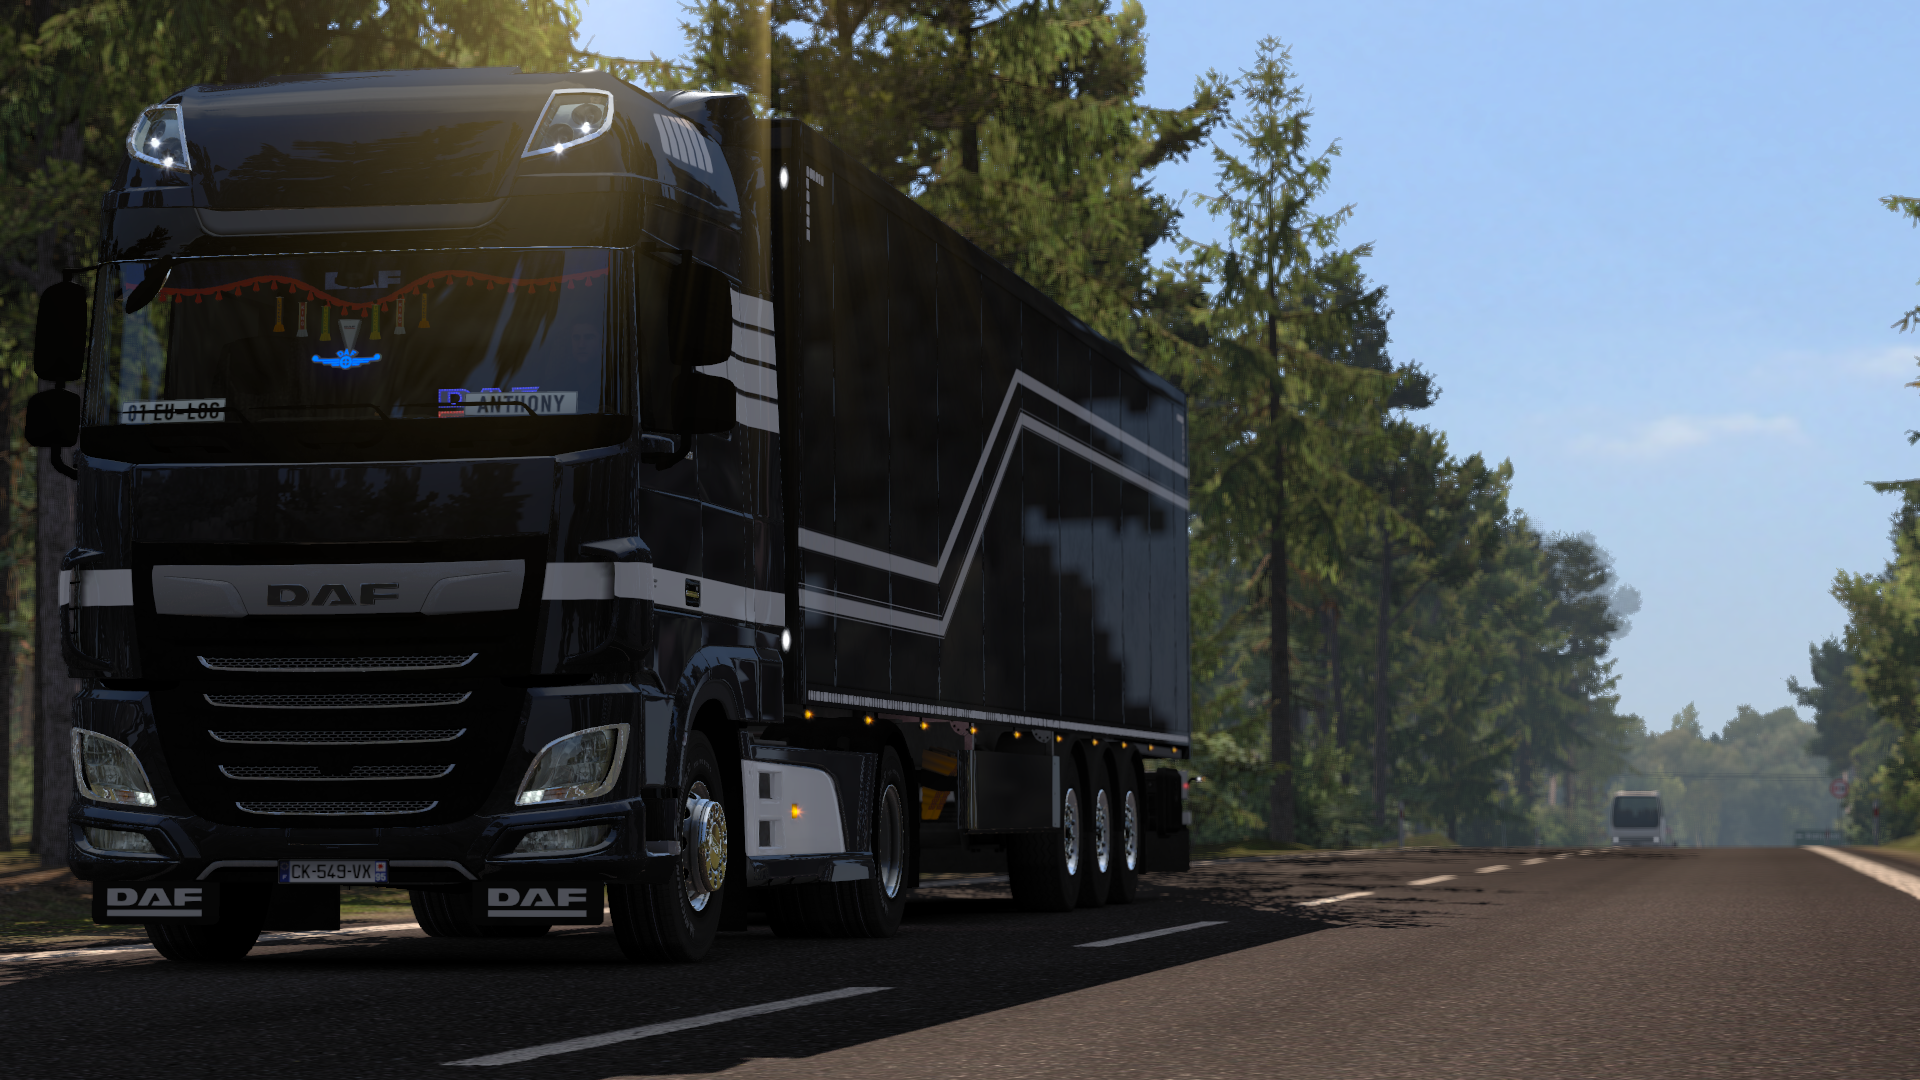 ets2_20180814_182429_00.png